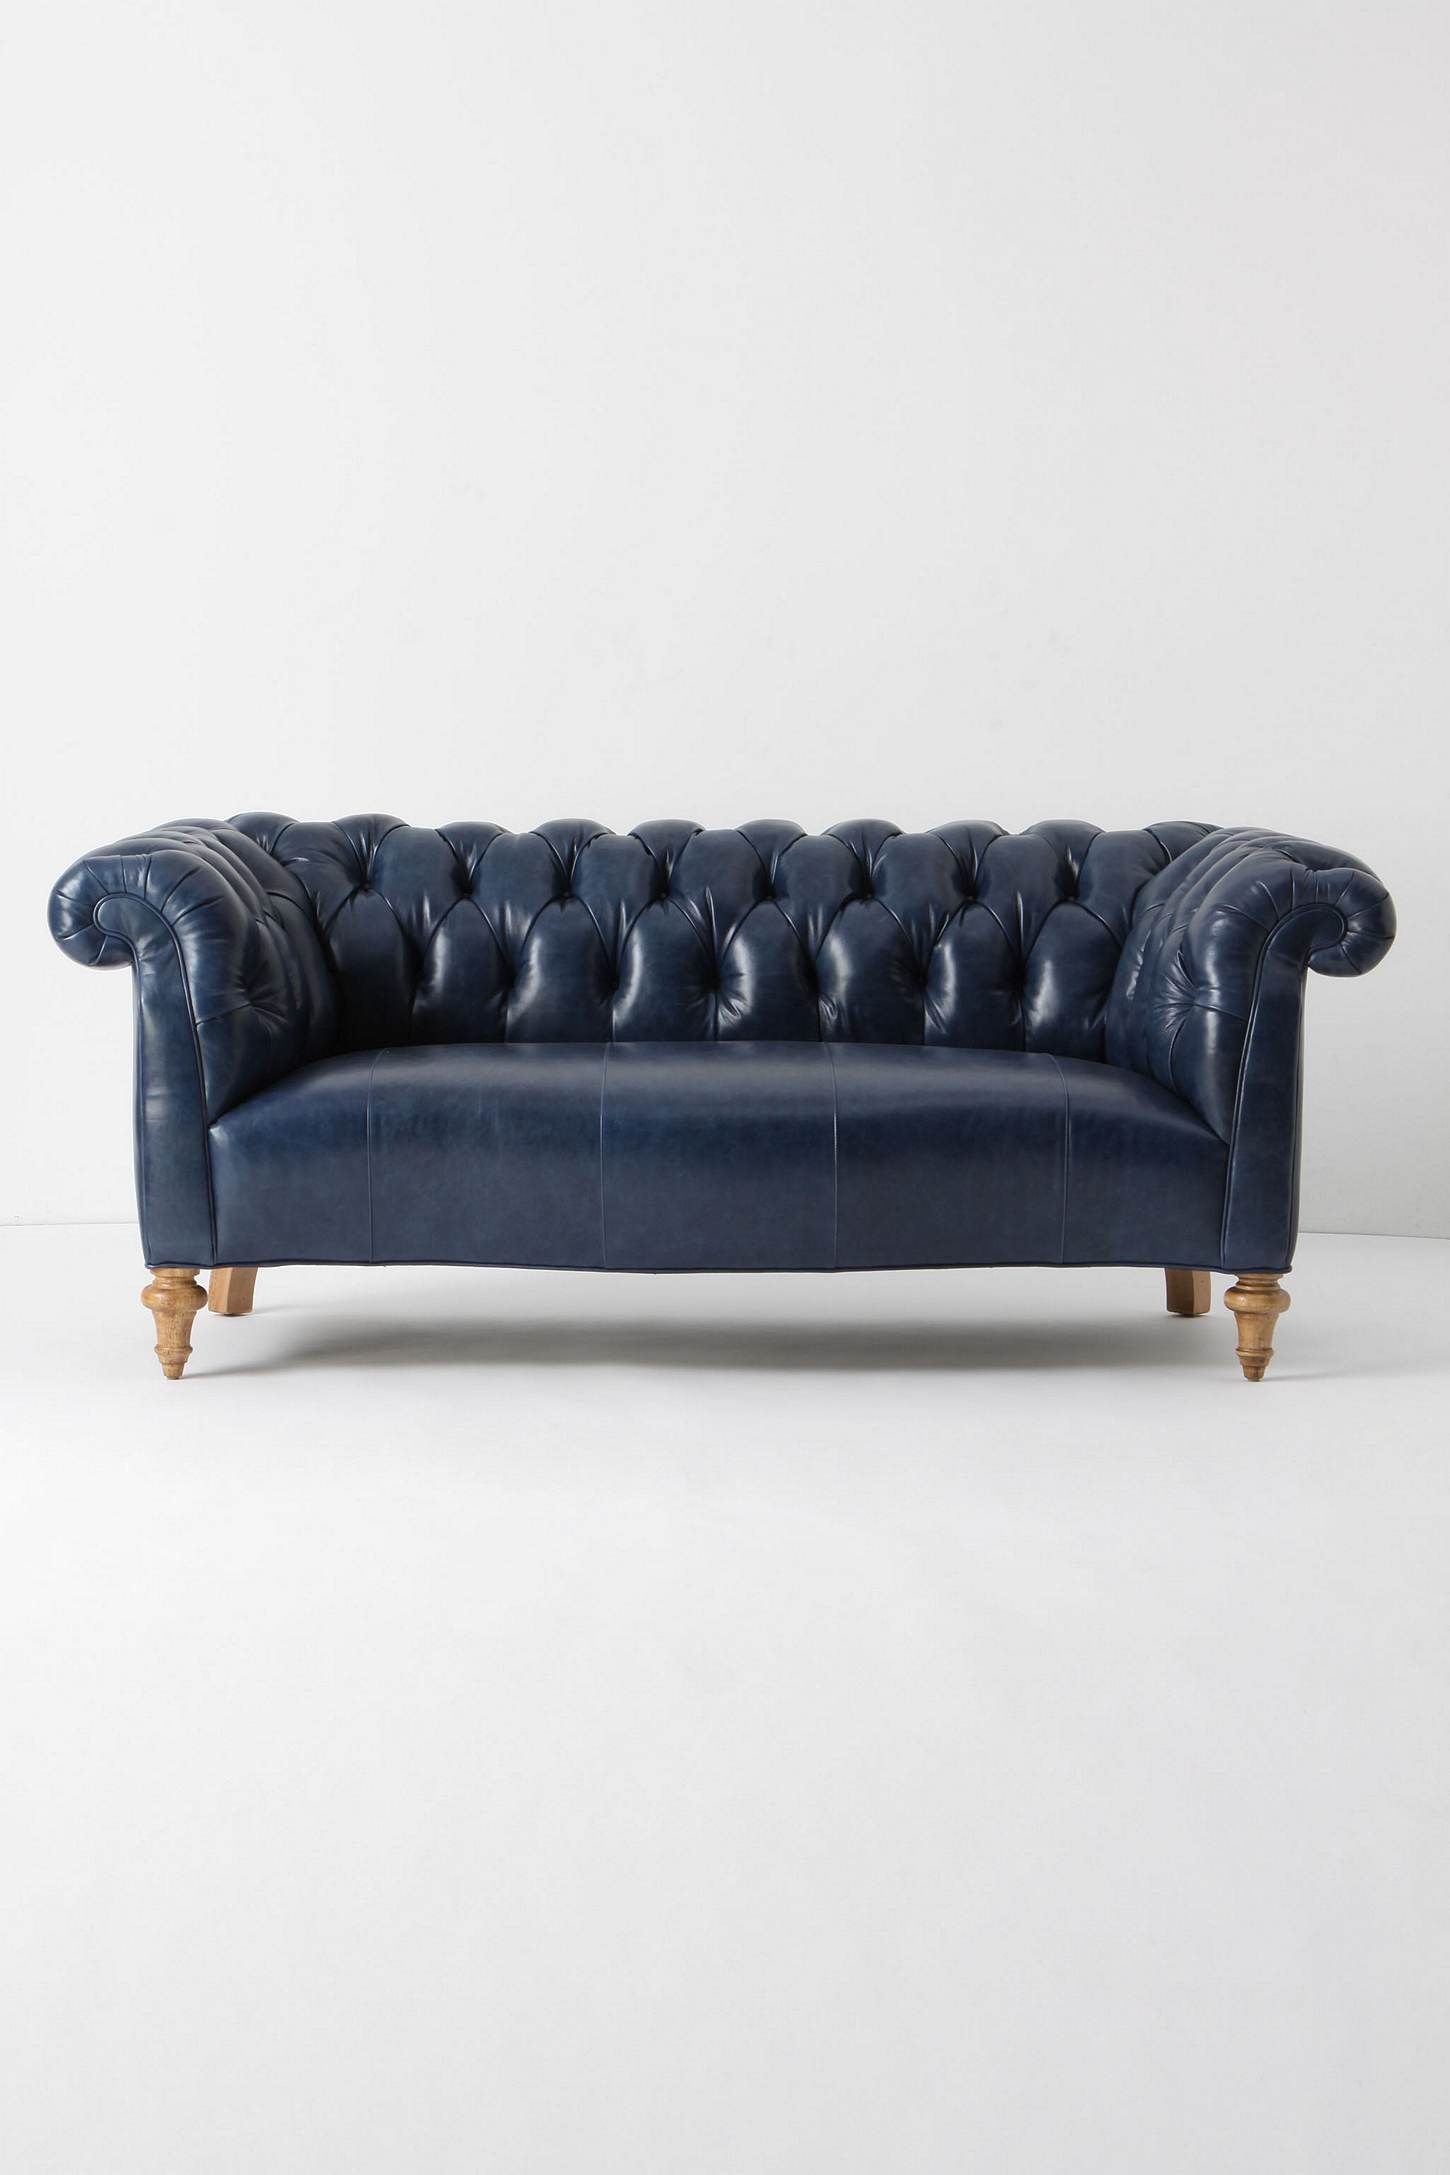 Milo Sofa | For Lounging (Couches, Chairs & Seating) | Pinterest Pertaining To Milo Sofa Chairs (View 5 of 25)